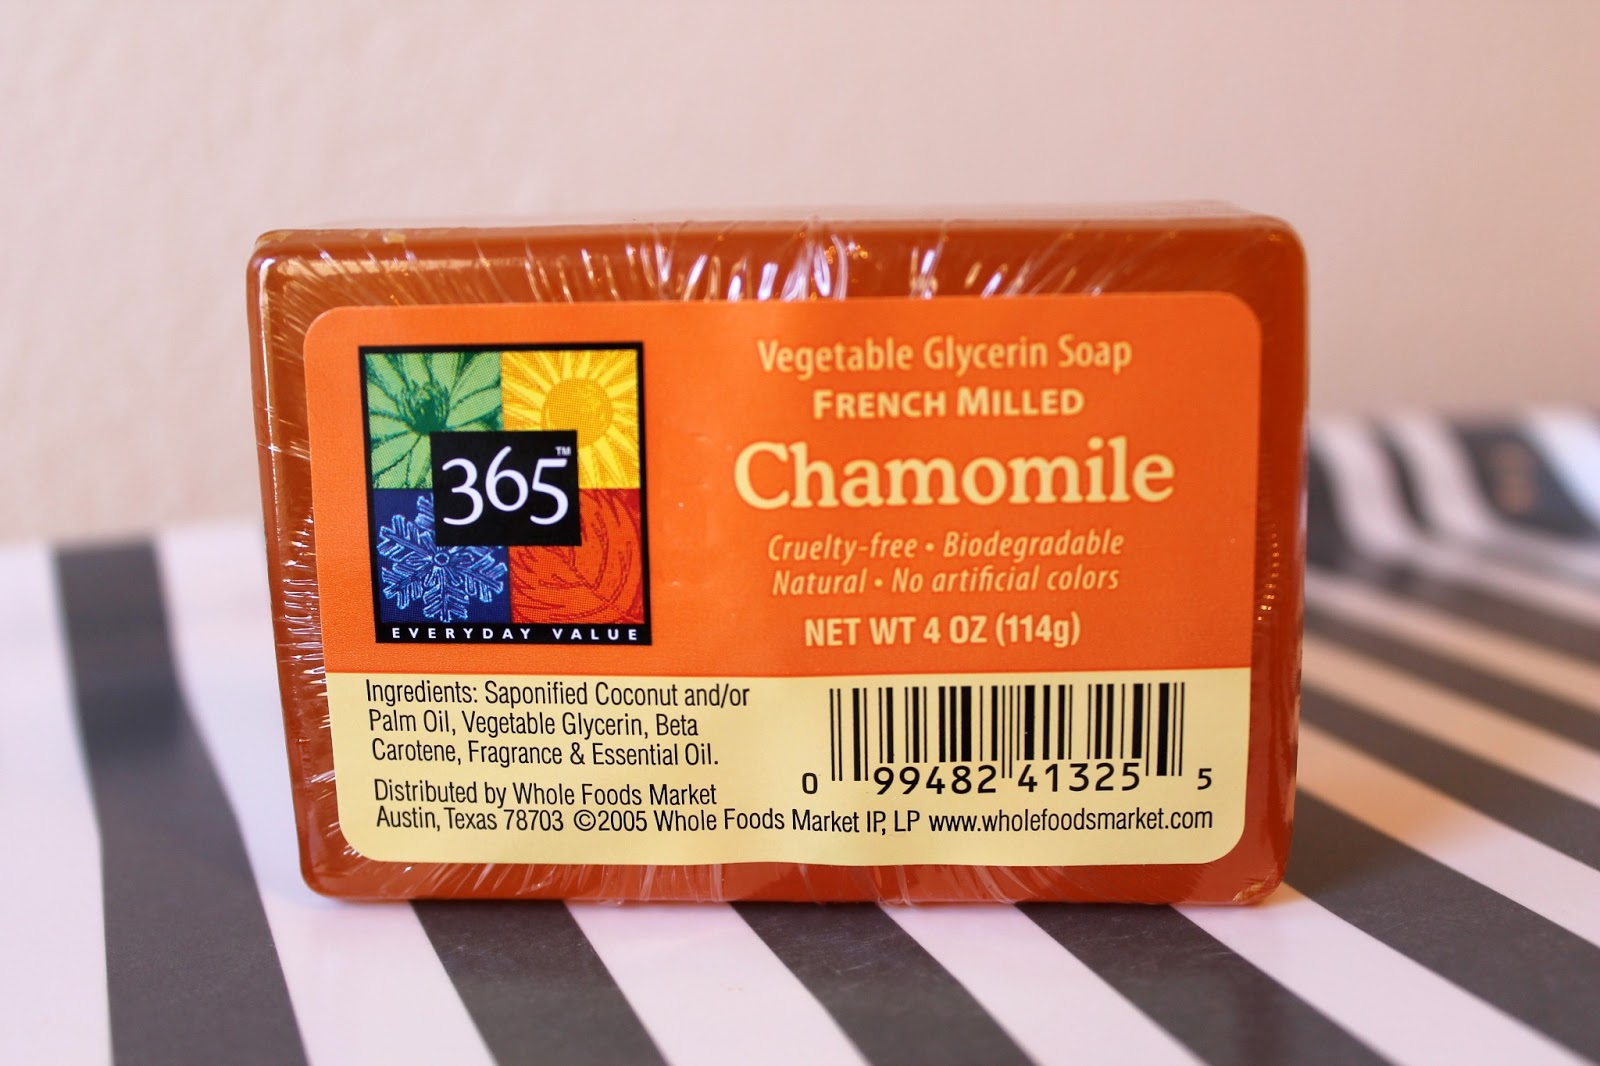 Whole Foods Vegetable Glycerin Soap